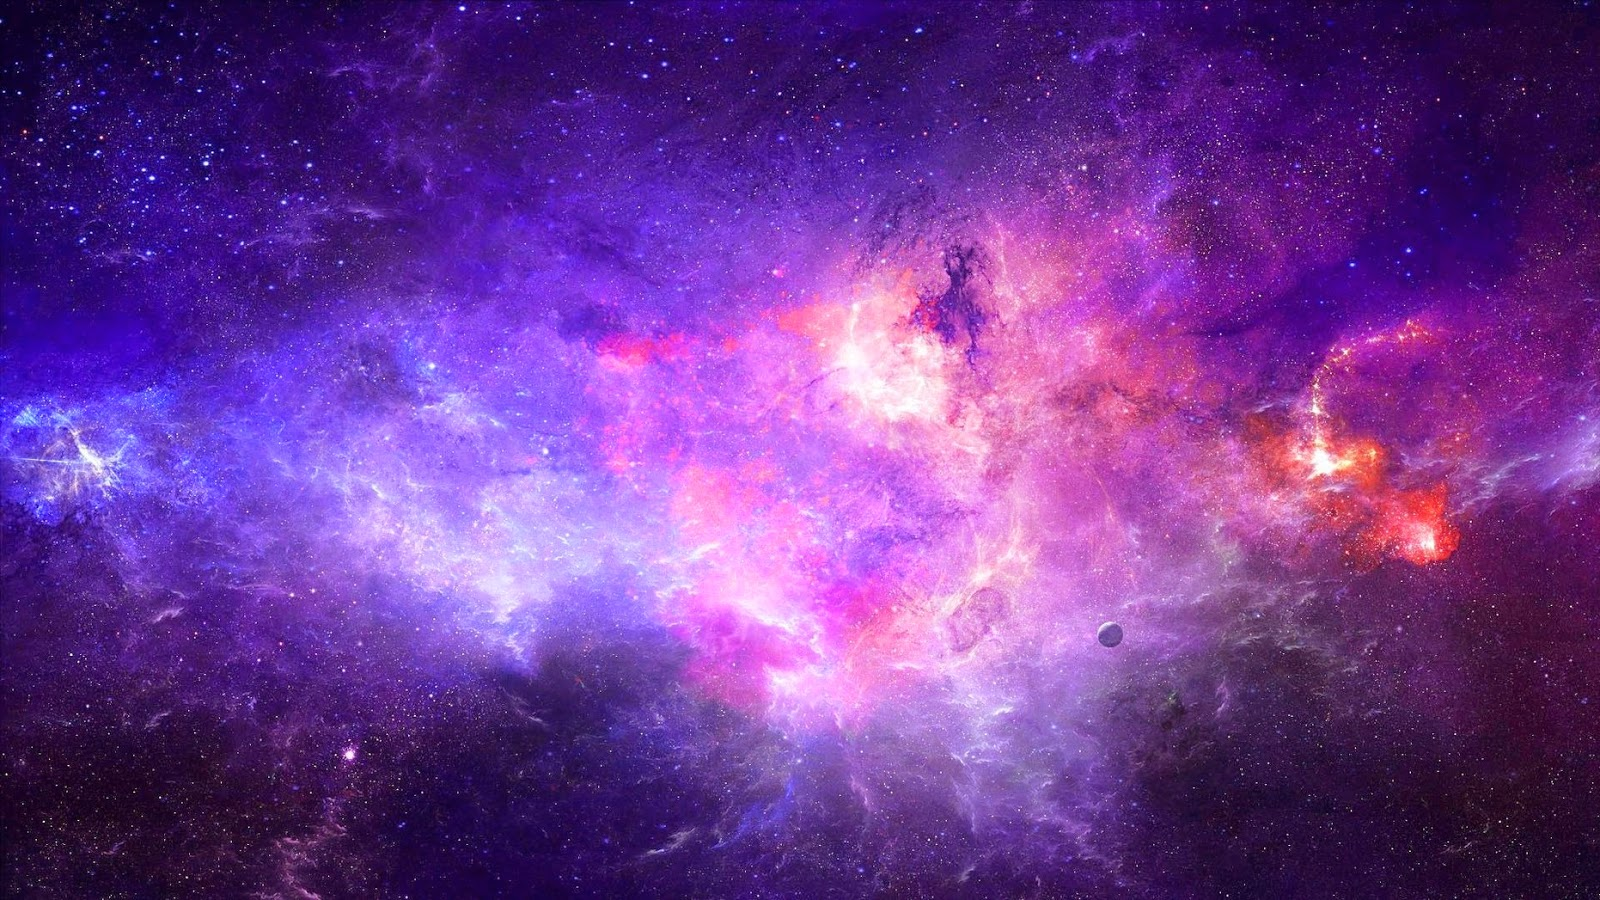 35 Hd Galaxy Wallpapers For Free Download: Galaxy Wallpaper Free Download: Galaxy Violet Wallpaper